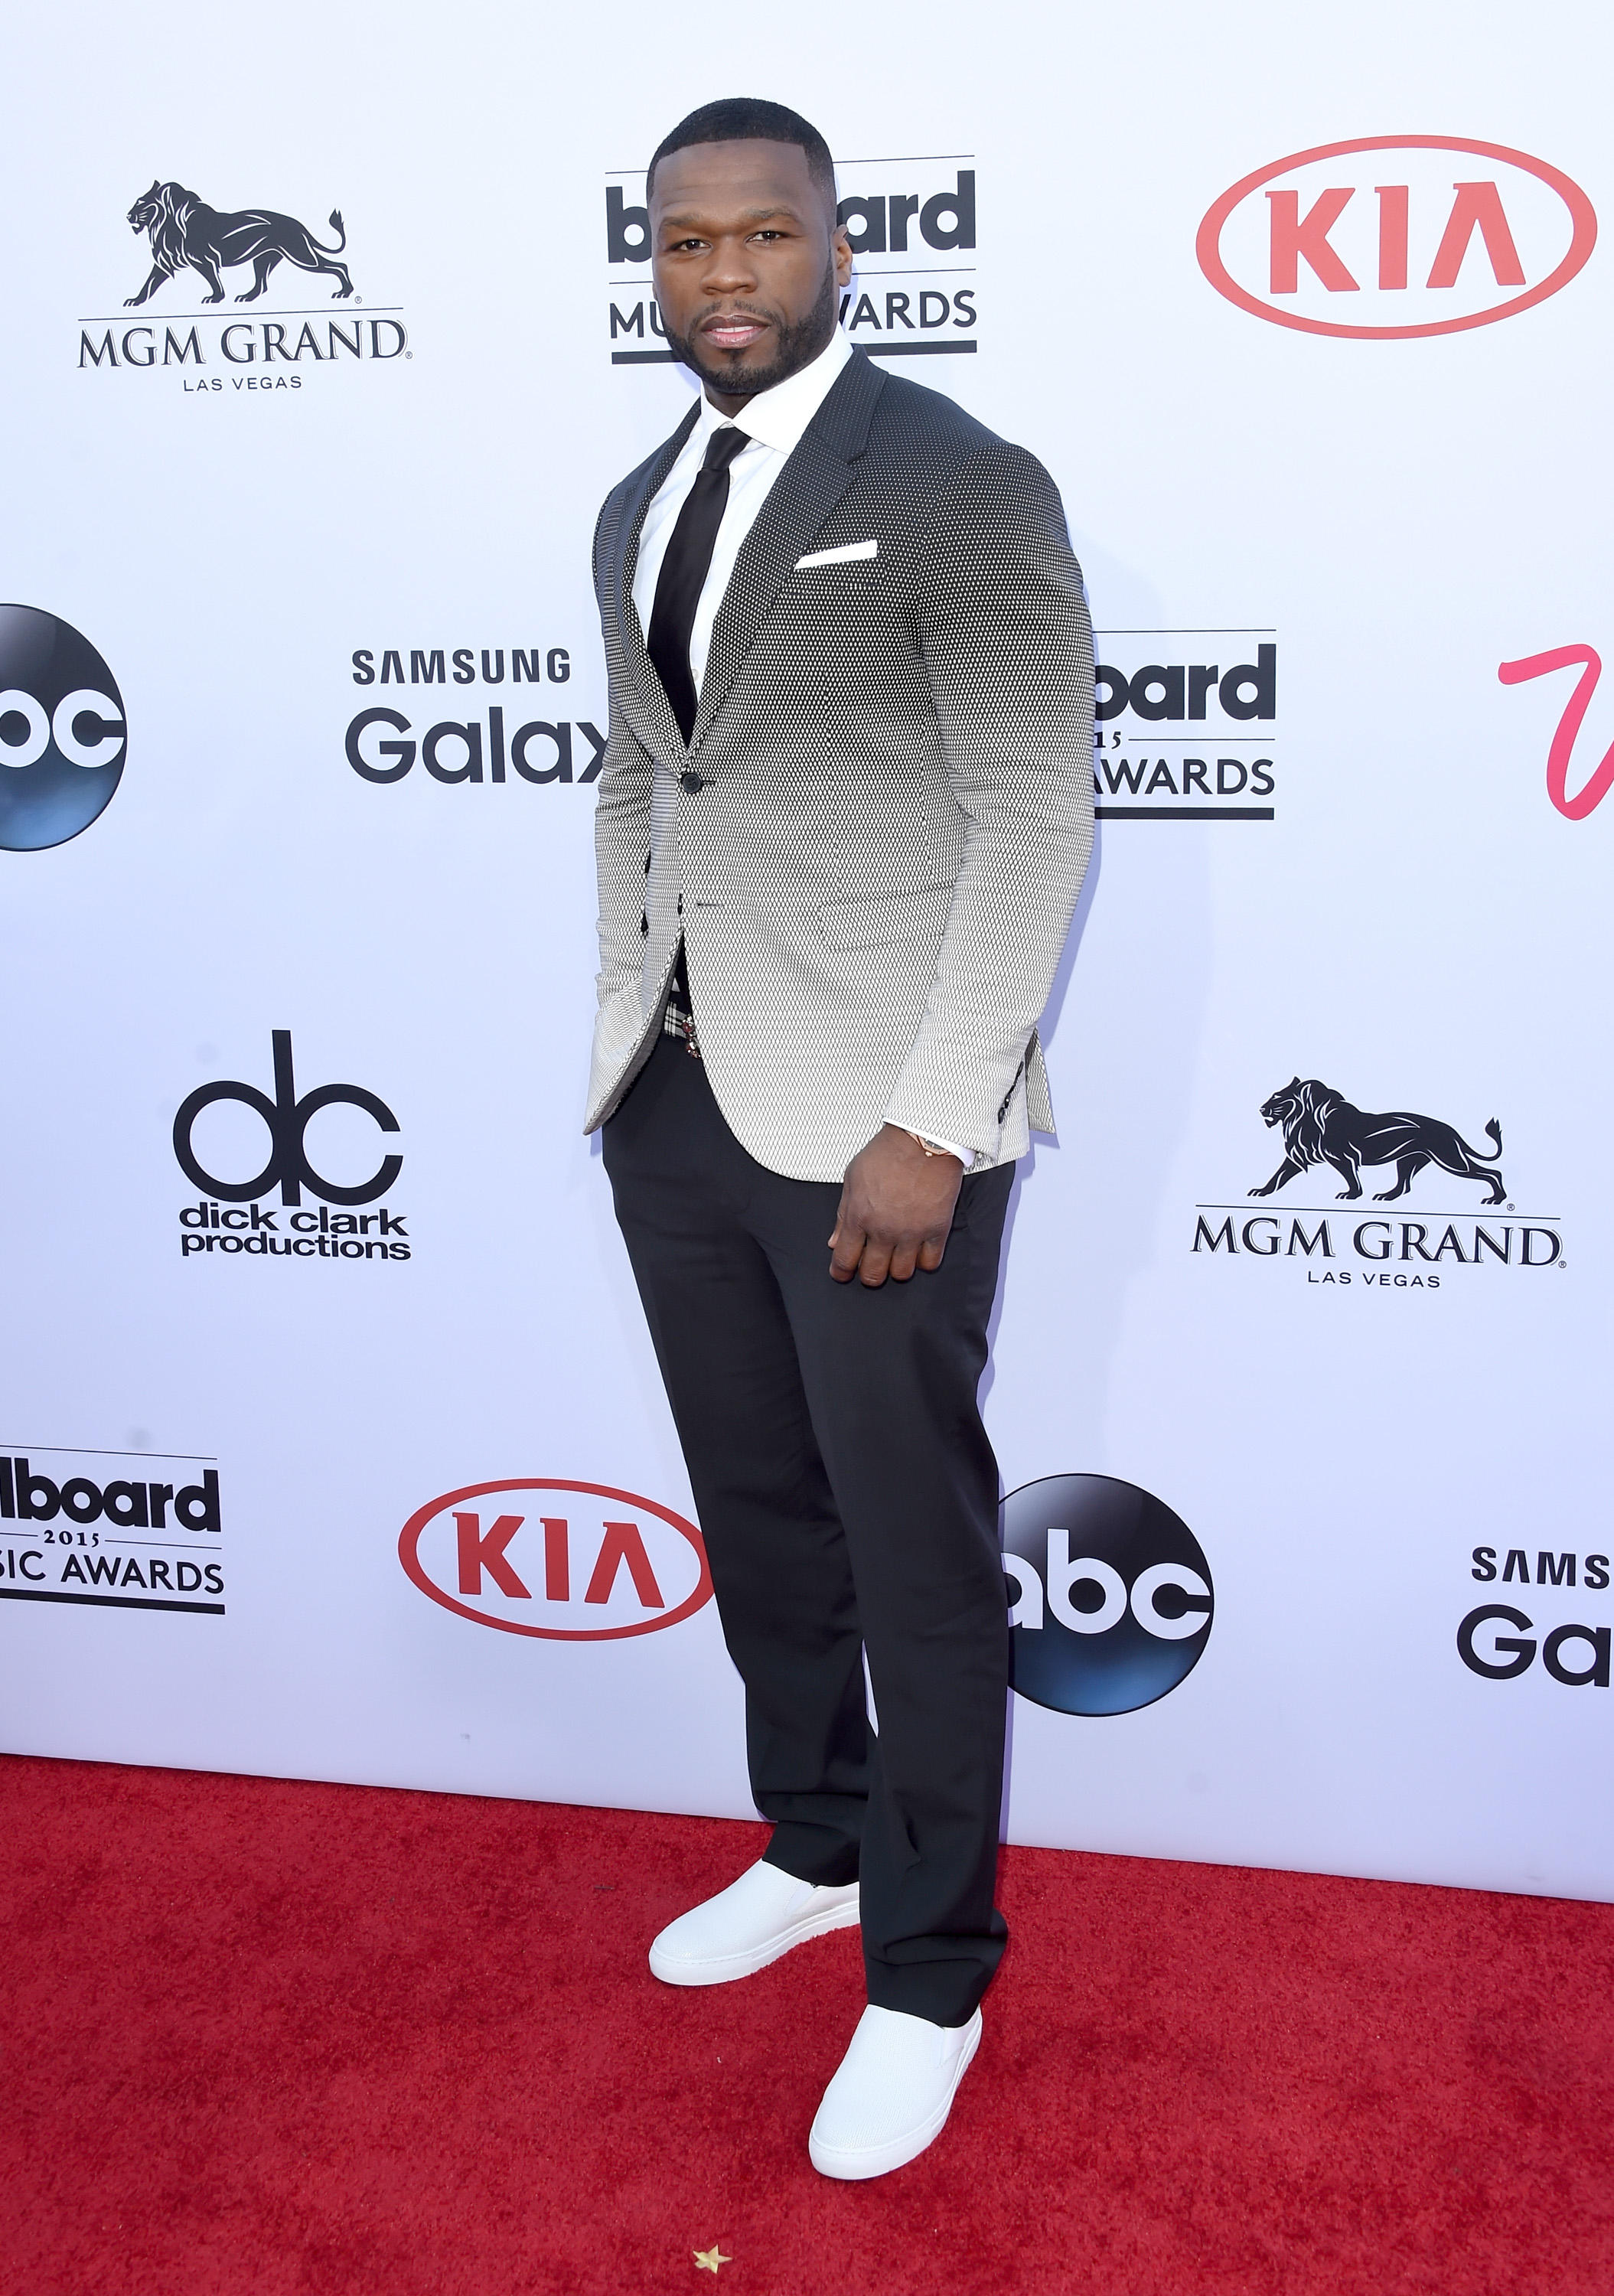 LAS VEGAS, NV - MAY 17:  Rapper 50 Cent attends the 2015 Billboard Music Awards at MGM Grand Garden Arena on May 17, 2015 in Las Vegas, Nevada.  (Photo by Jason Merritt/Getty Images)